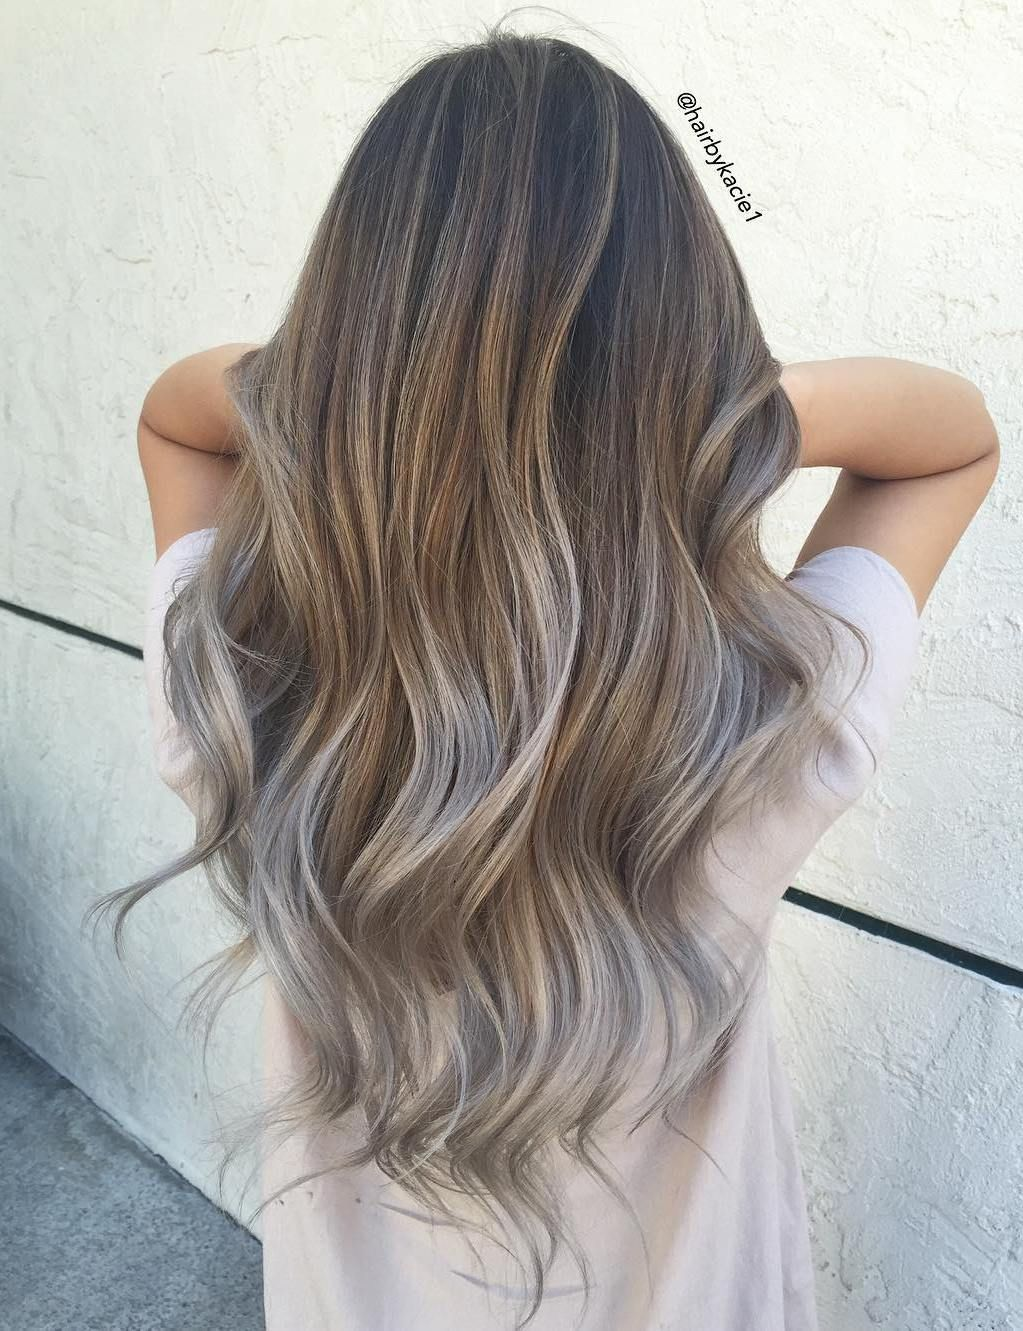 Lovely Light+Brown+And+Silver+Balayage+Hair // Gray Hair Trend Amazing Design